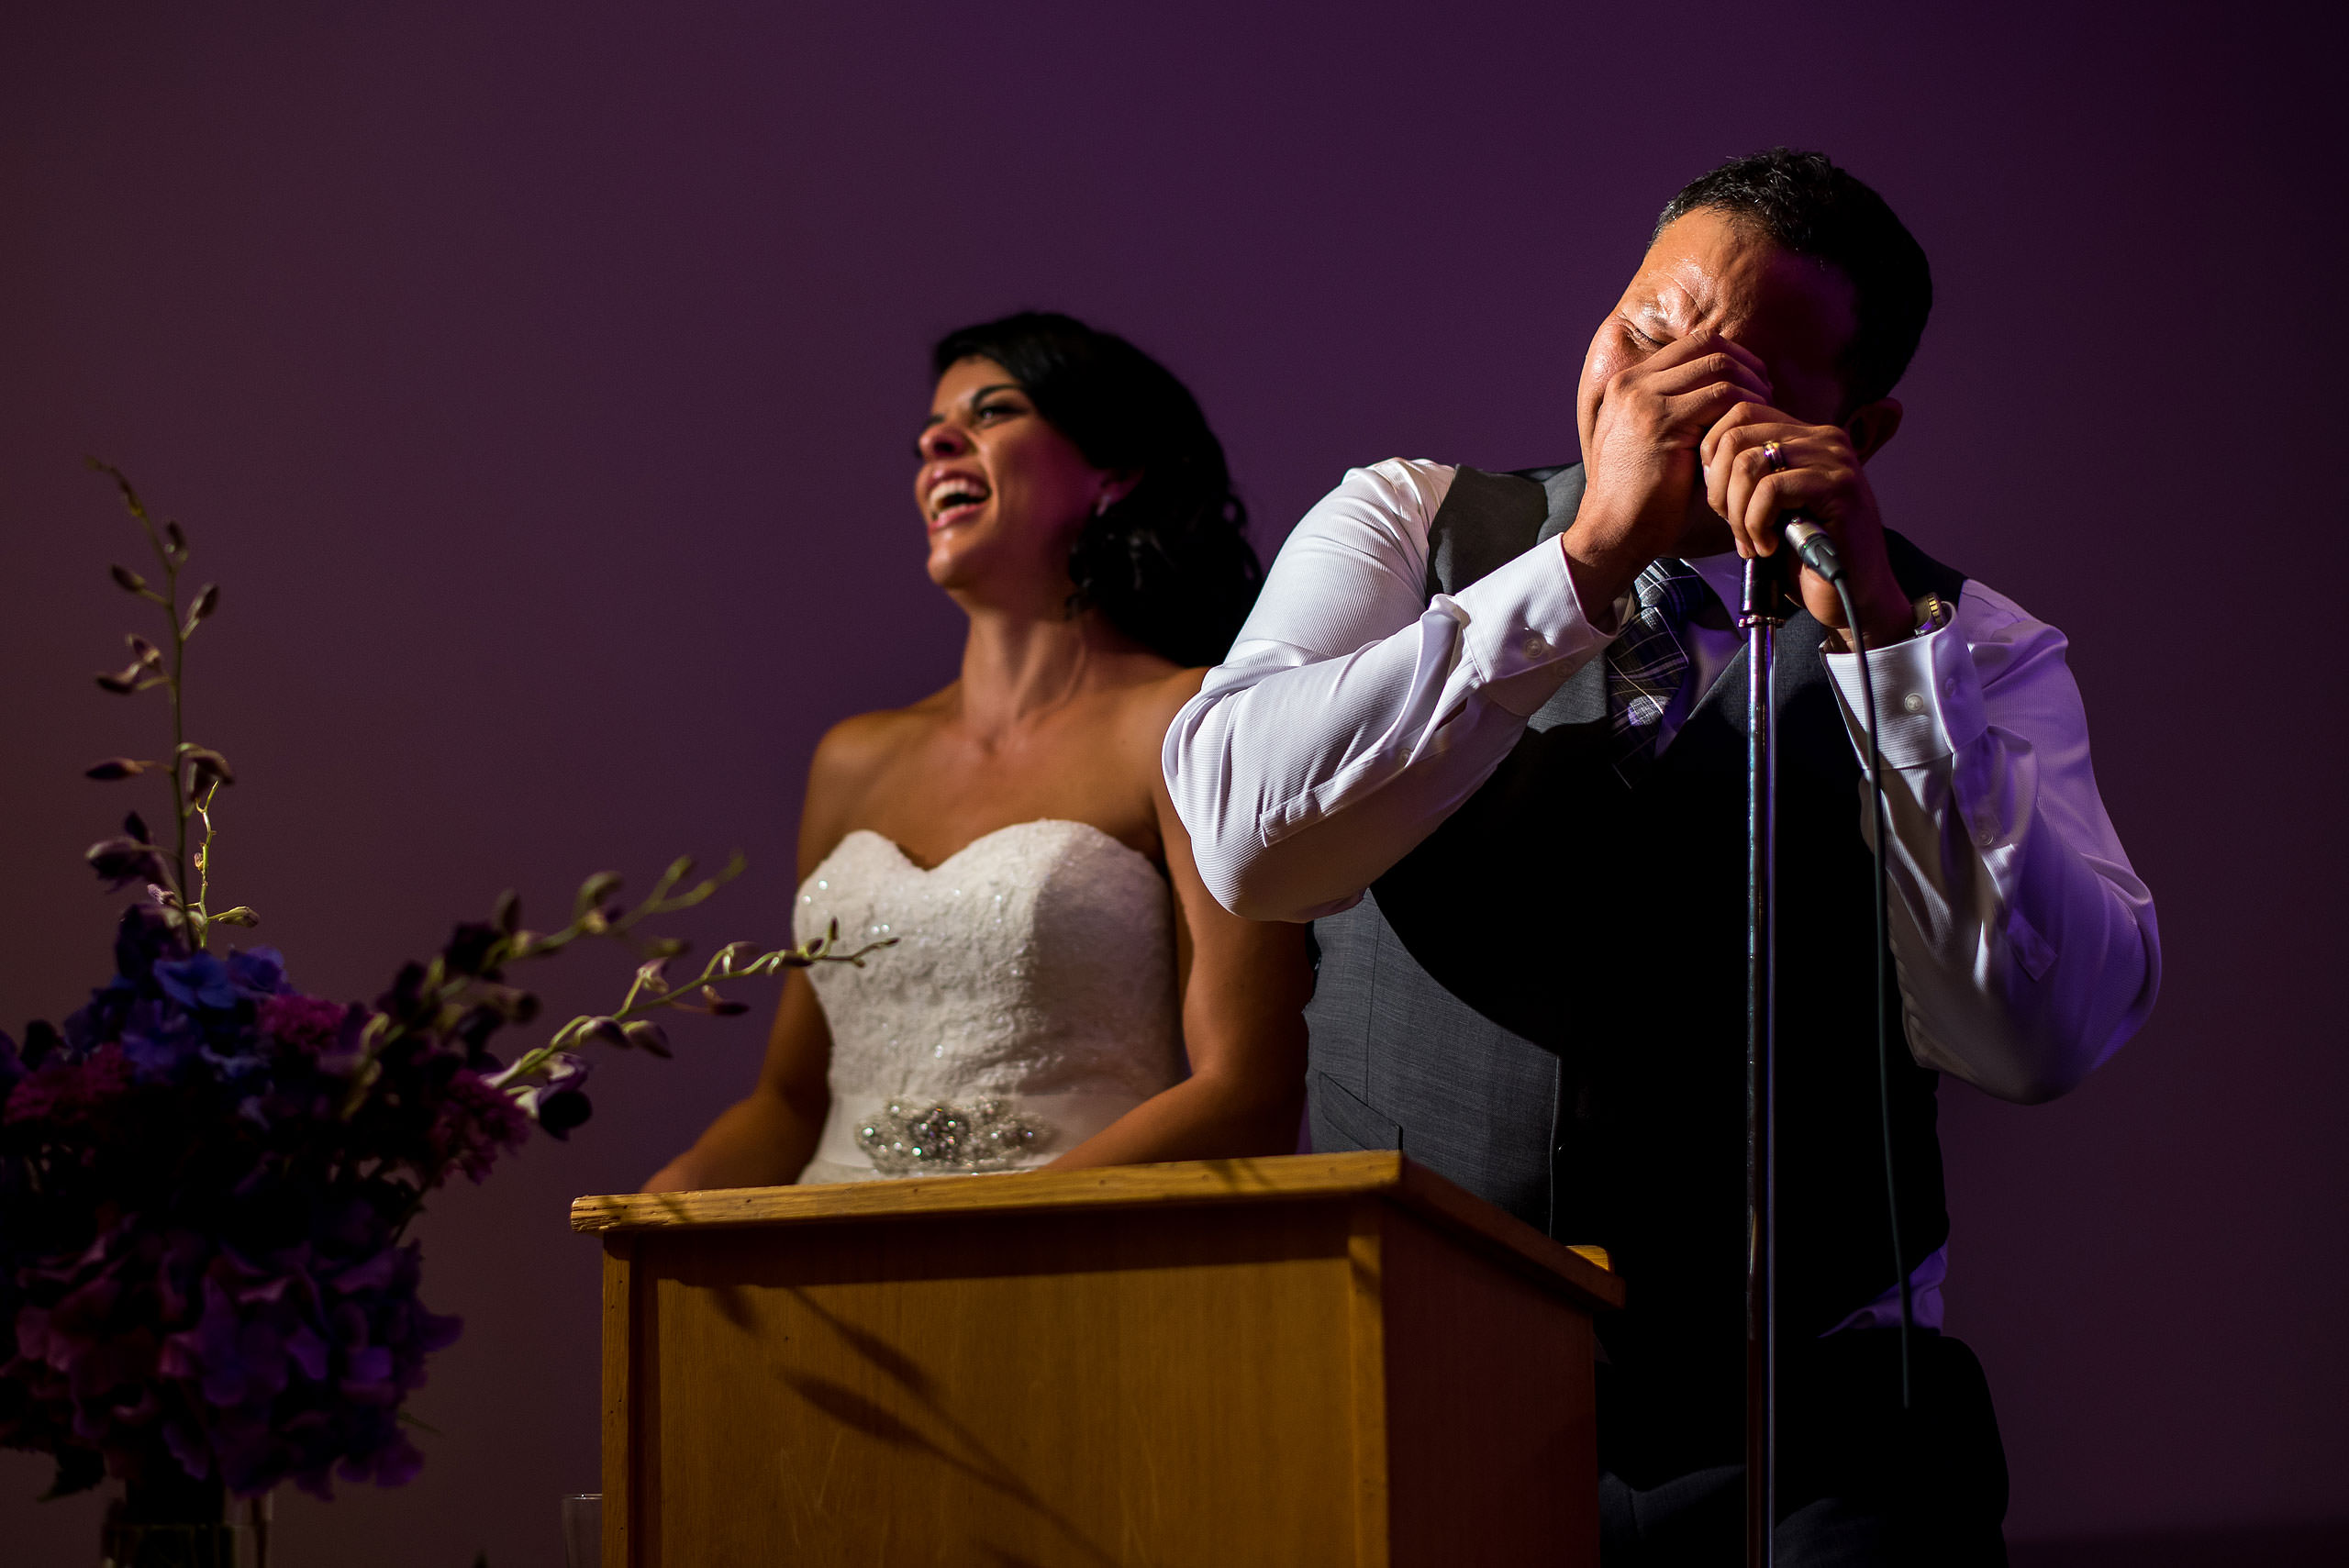 a groom giving a speech with his bride by Edmonton wedding photographer sean leblanc